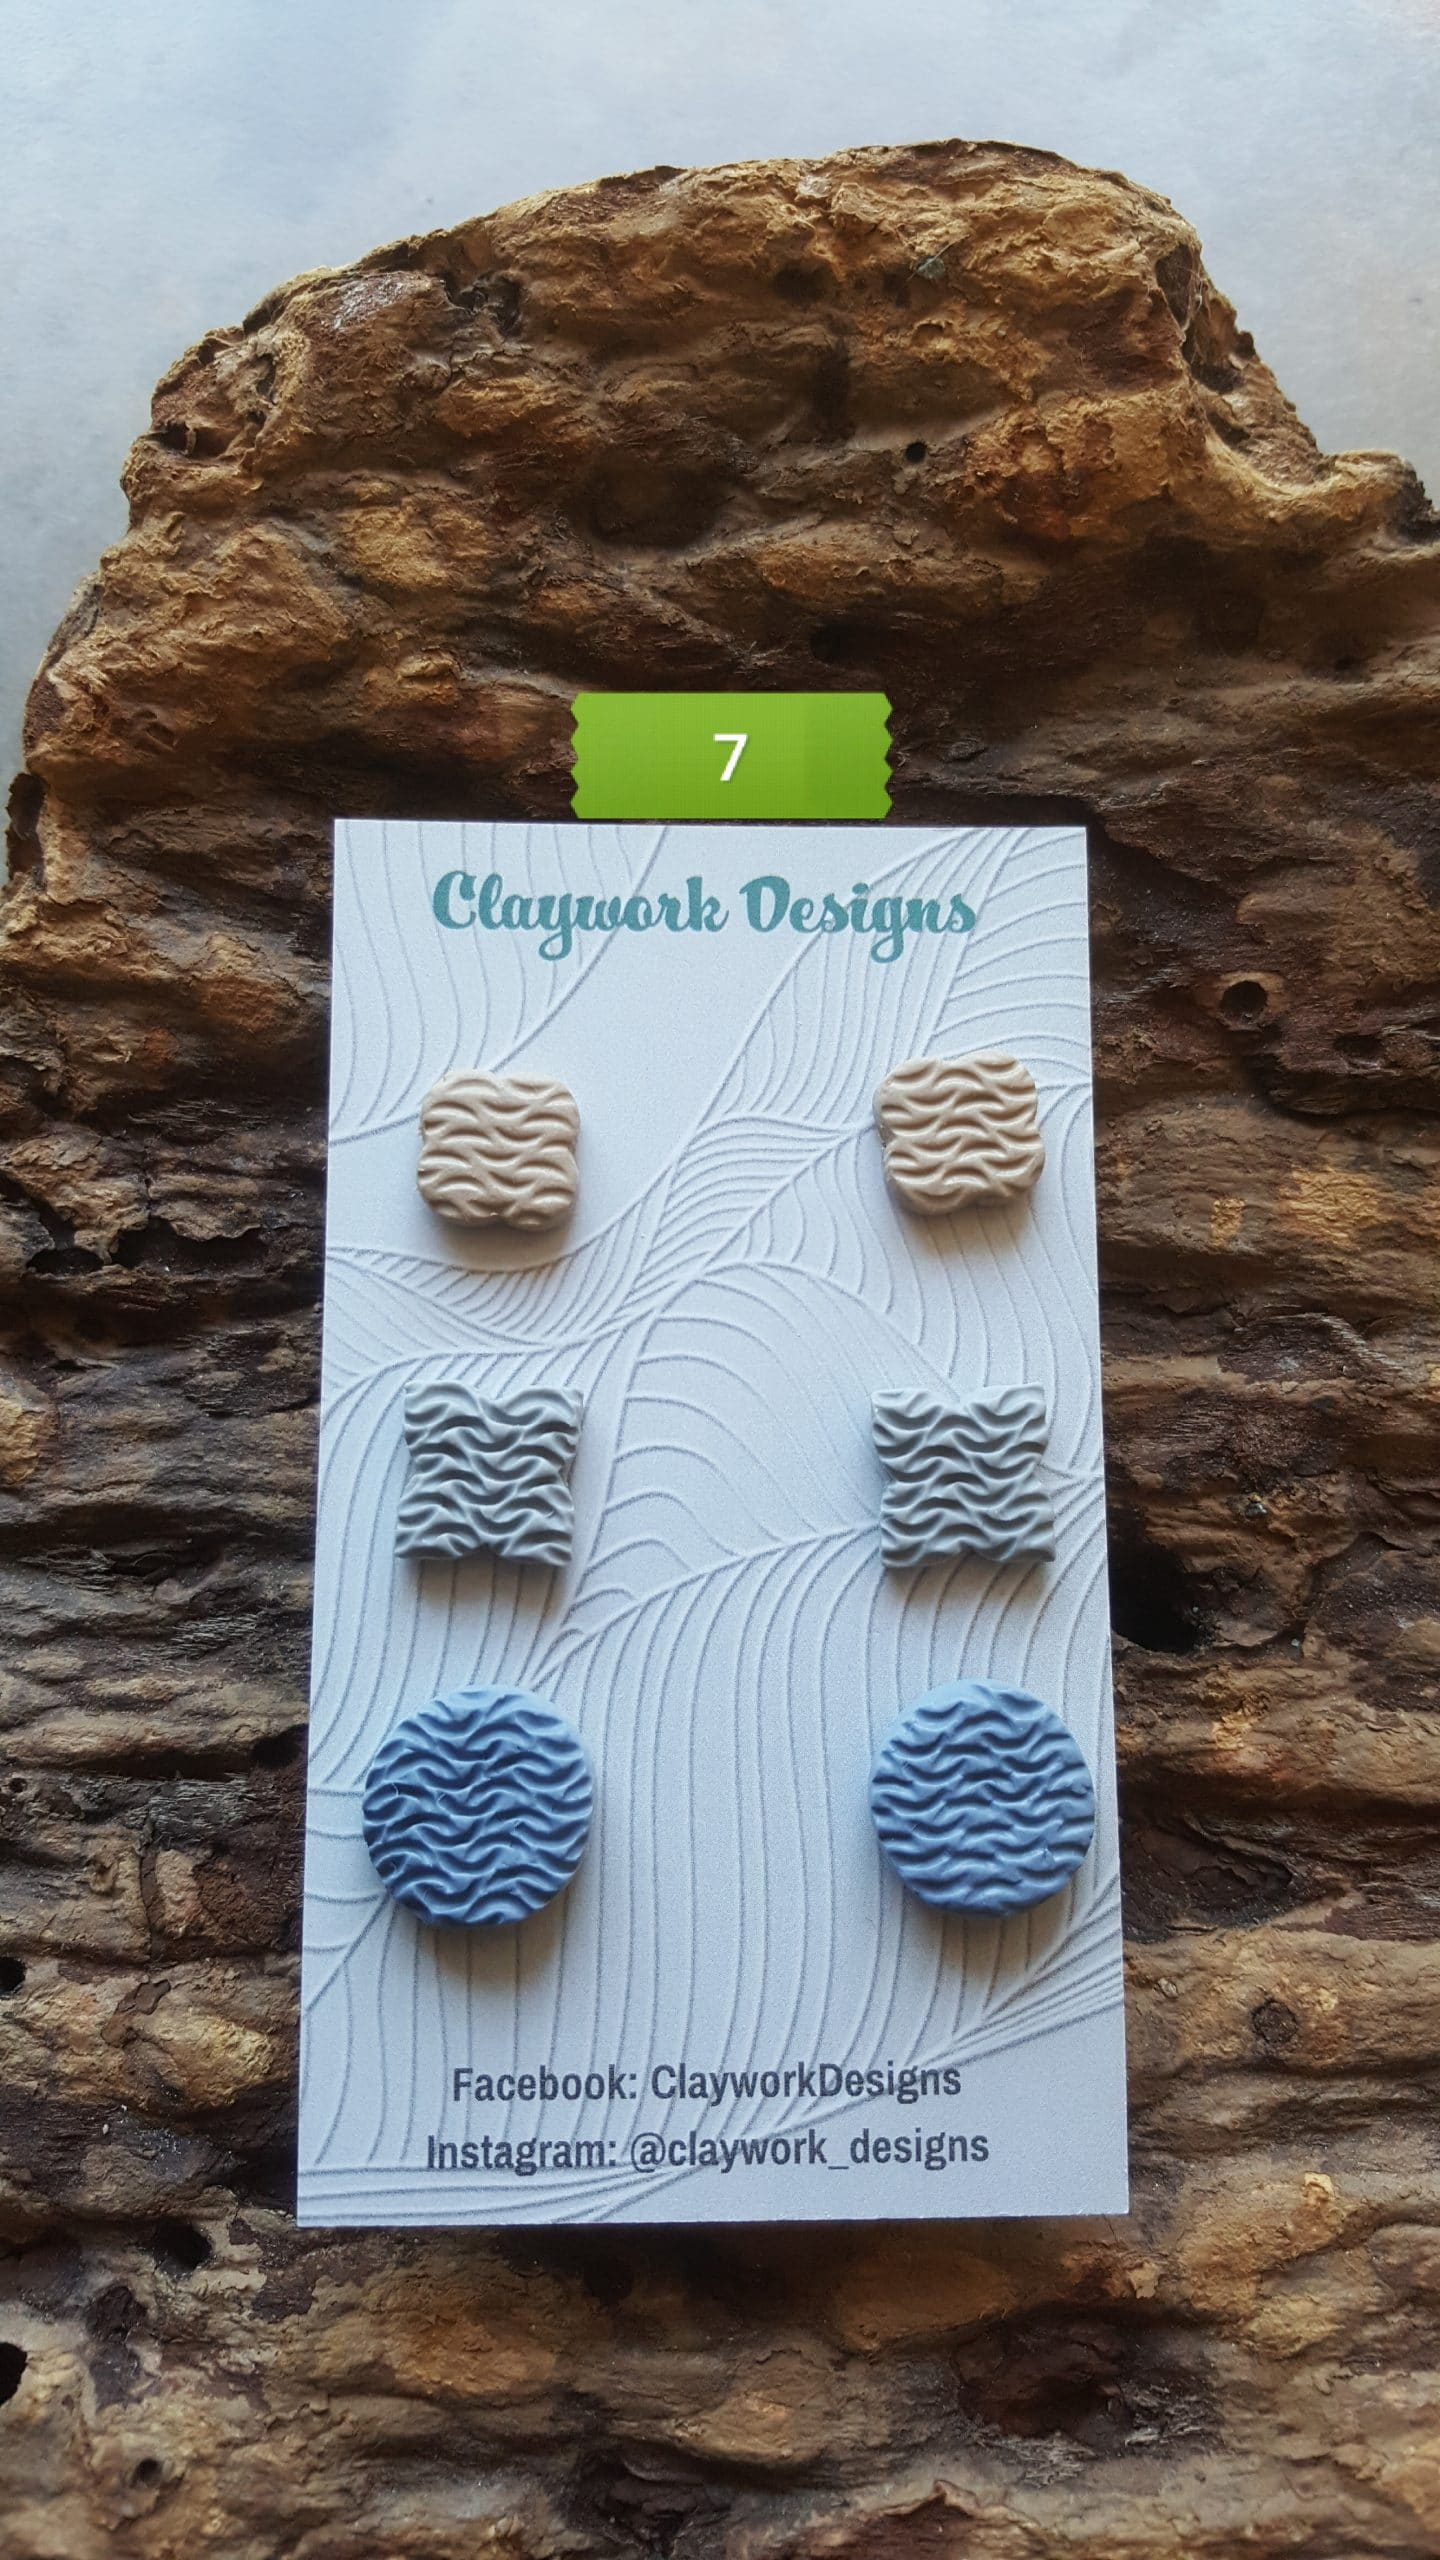 Wirework Designs | Handcrafted chainmaille jewellery and chainmaille products | Chainmaille Weave Stud Earring - 3 Packs | 20210620_172246